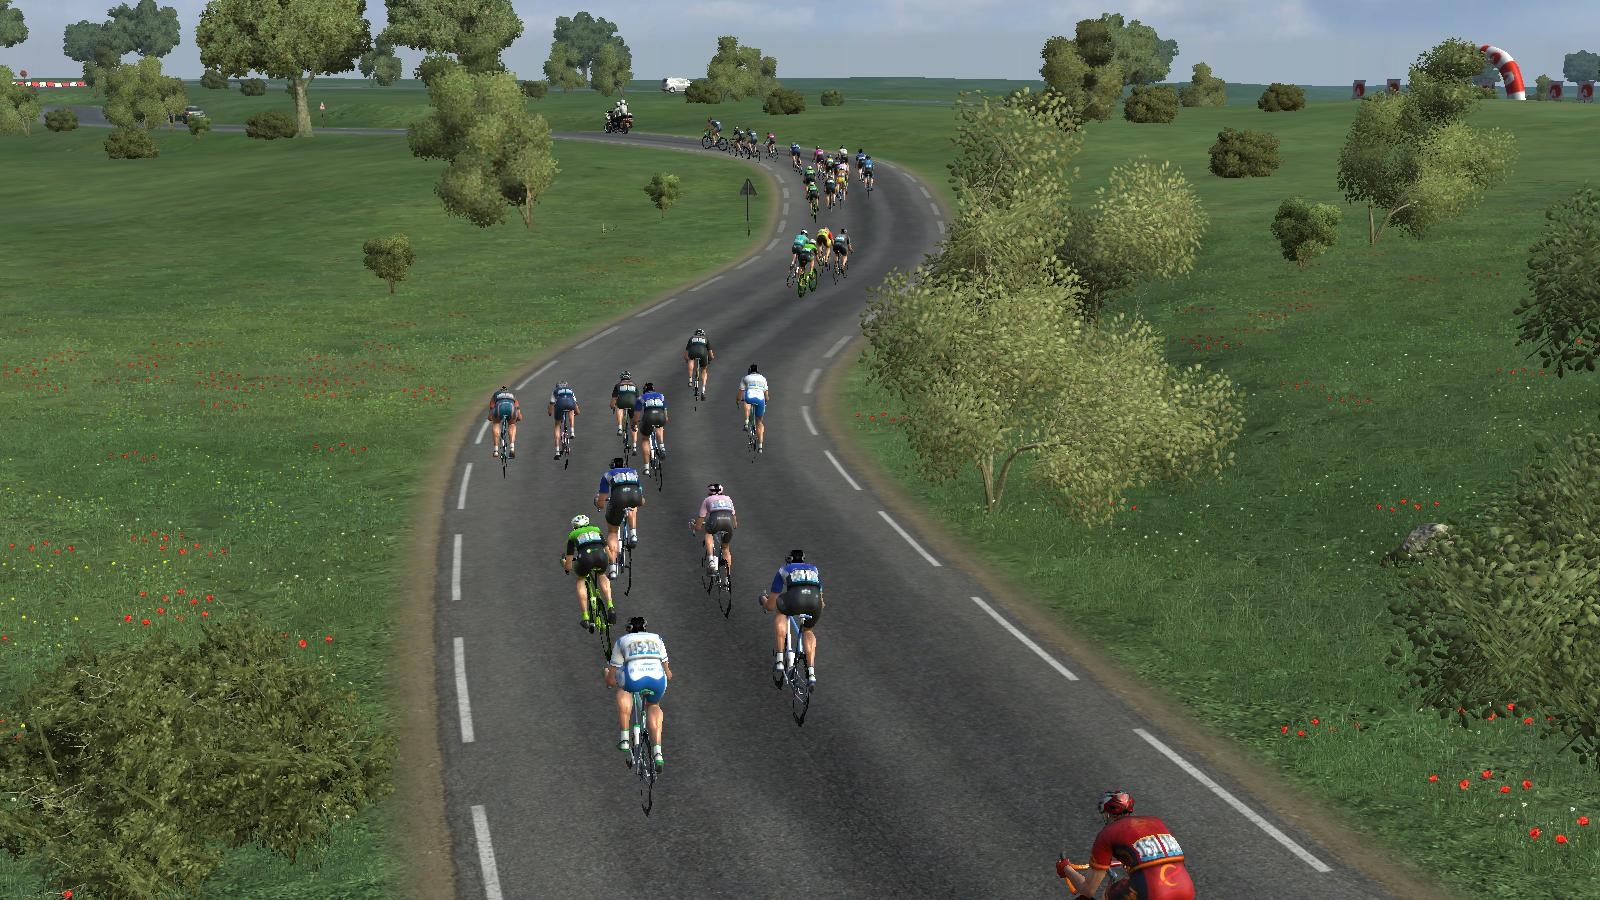 pcmdaily.com/images/mg/2019/Races/PTHC/Rheden/30.jpg